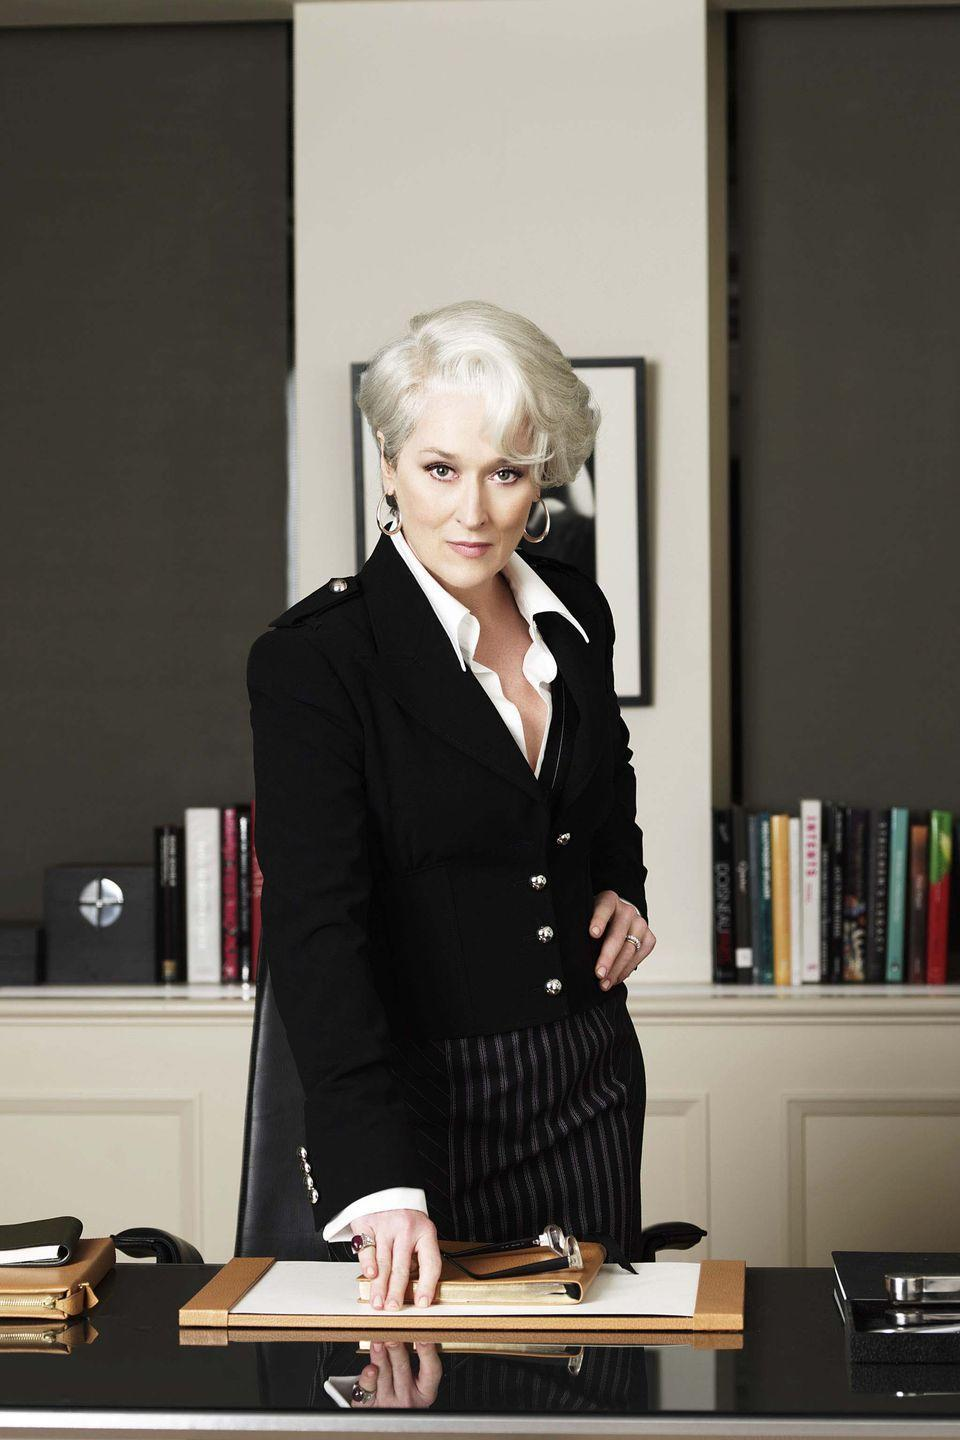 <p>If you're looking for officewear inspiration, why not learn from the best? Meryl Streep's memorable performance as Runway editor Miranda Priestly is filled with glamorous suits, incredible coats and plenty of dramatic sunglasses.</p>